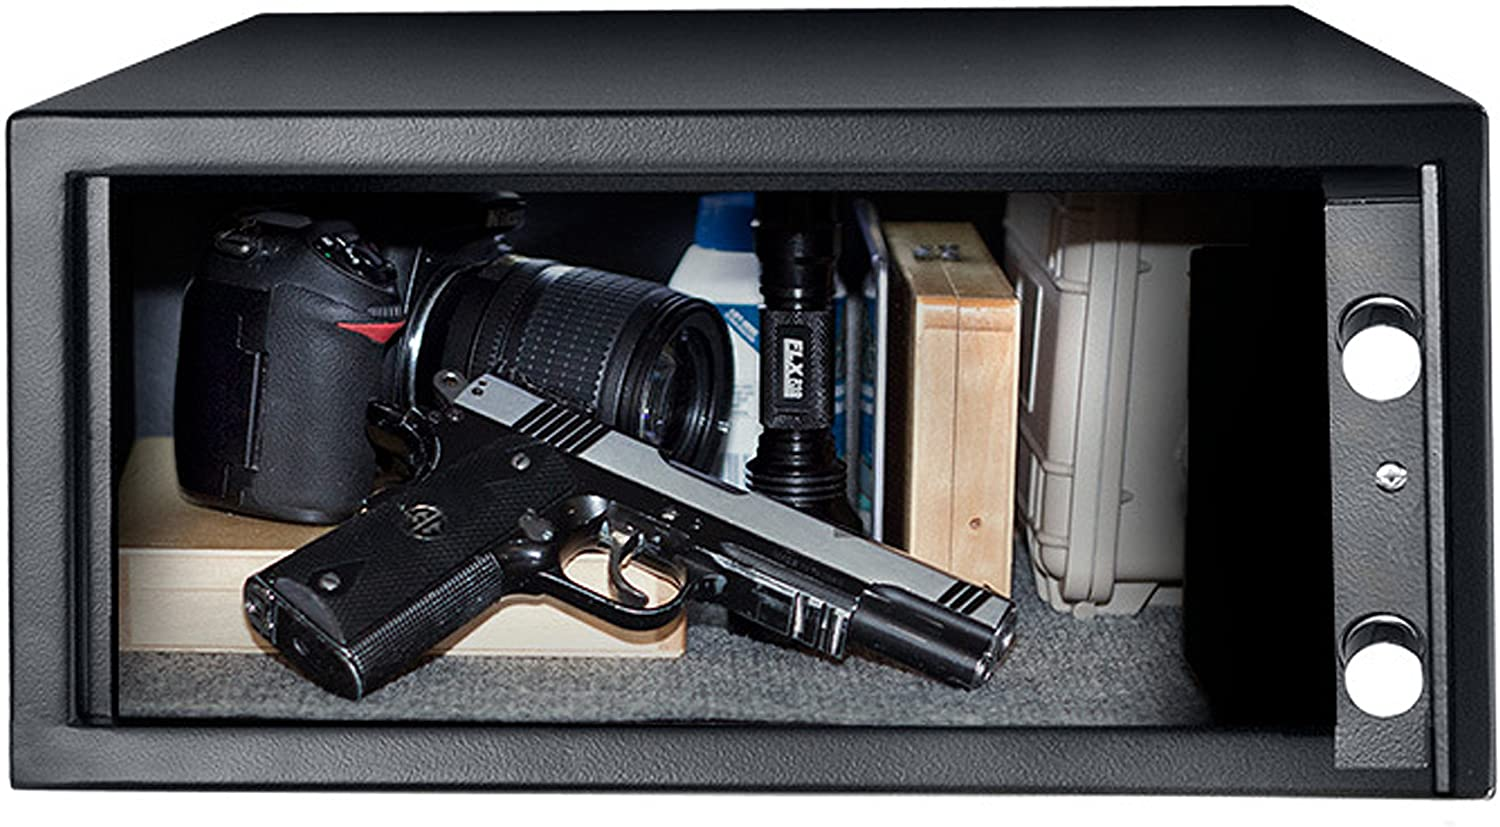 Amazon.com : BARSKA Biometric Safe : Gun Safes And Cabinets ...